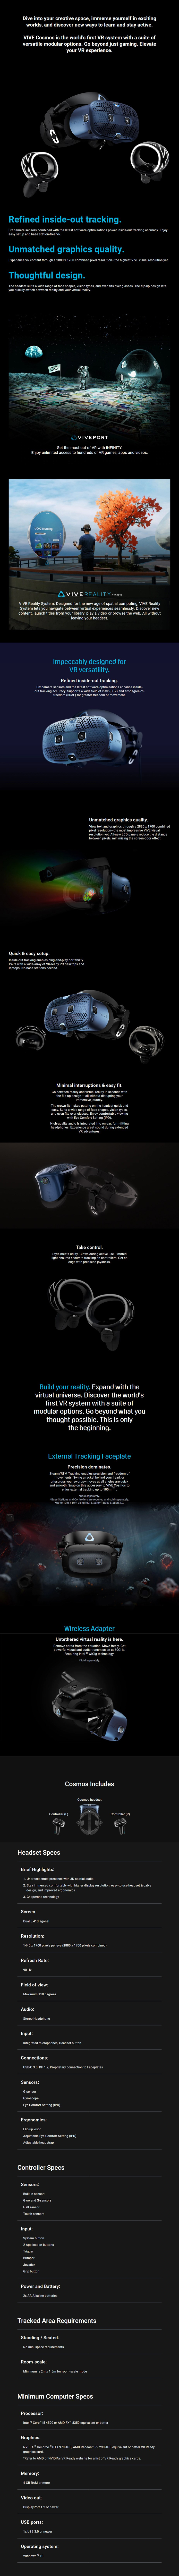 A large marketing image providing additional information about the product HTC VIVE Cosmos VR Headset with Link Box - Additional alt info not provided